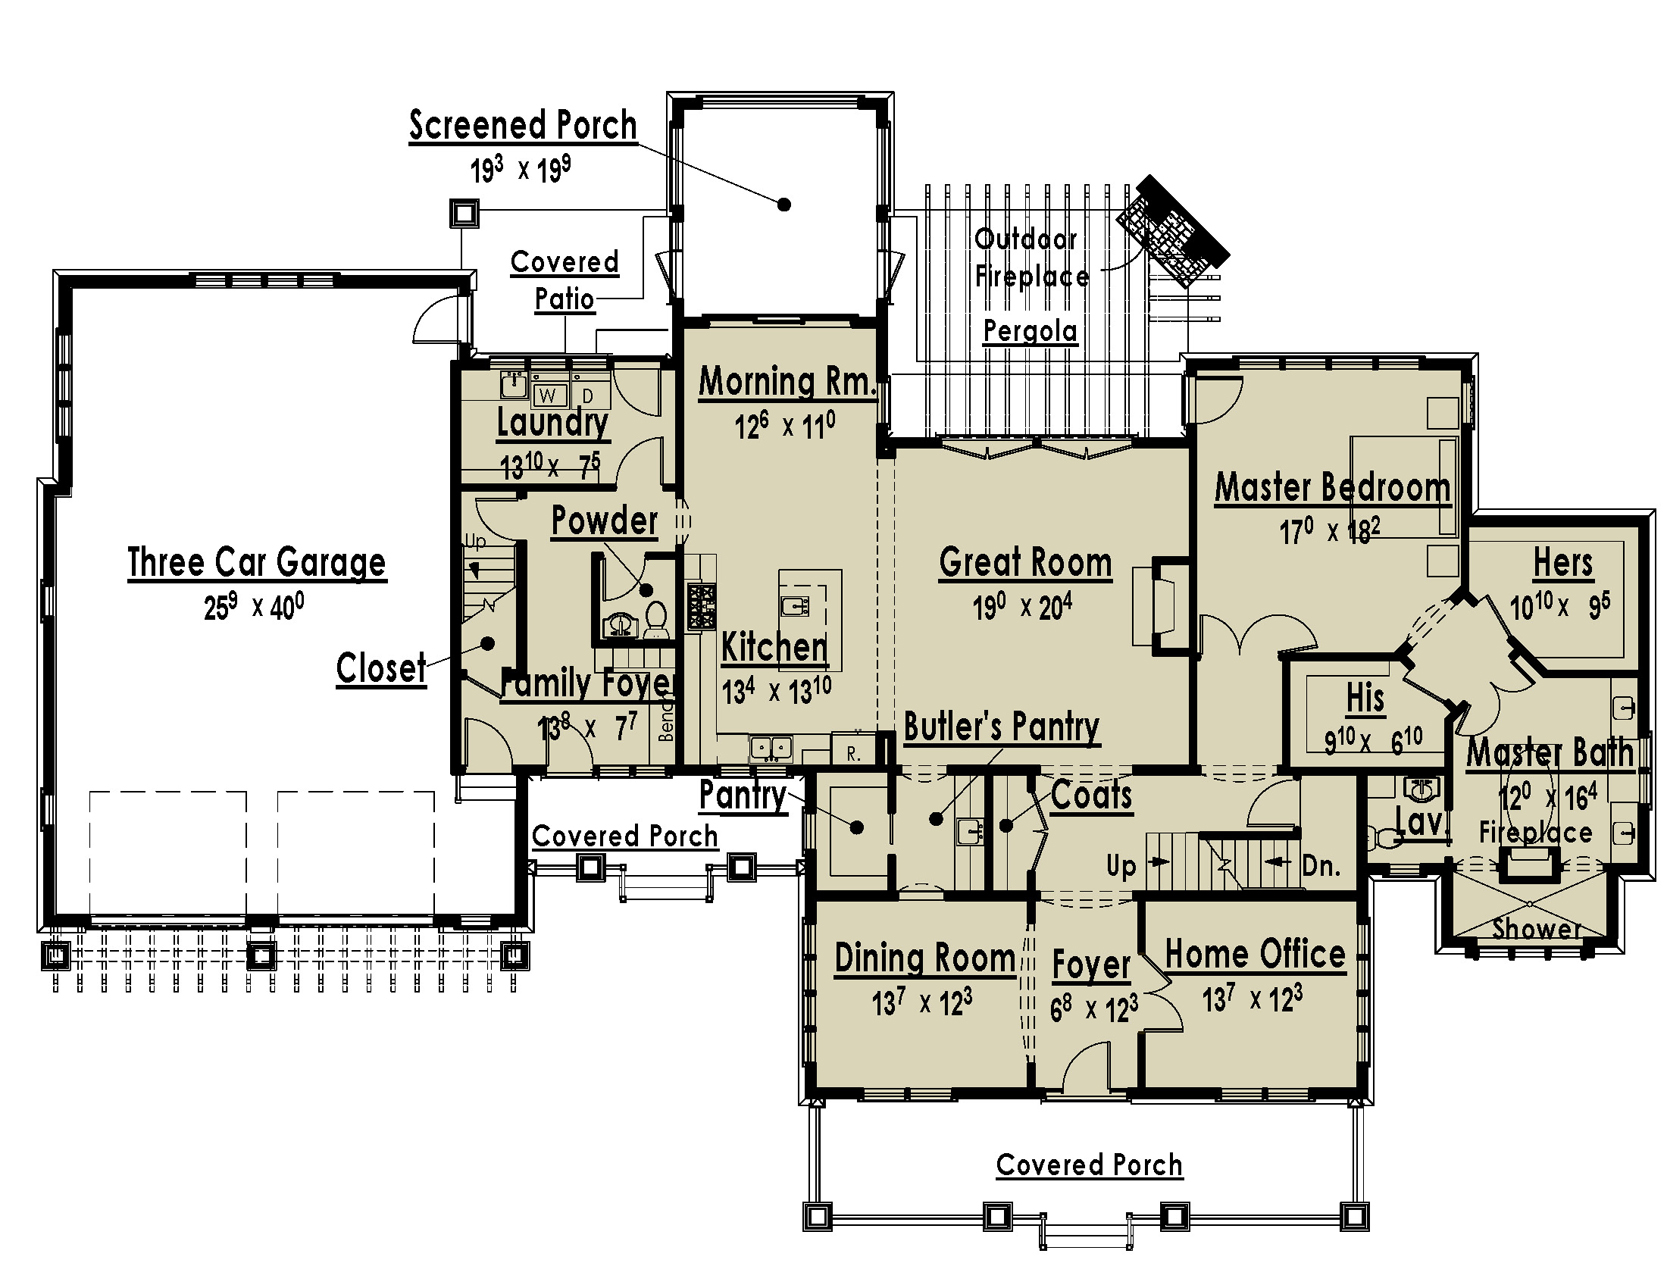 2 master suite home plans house plans home designs - Master on main house plans image ...